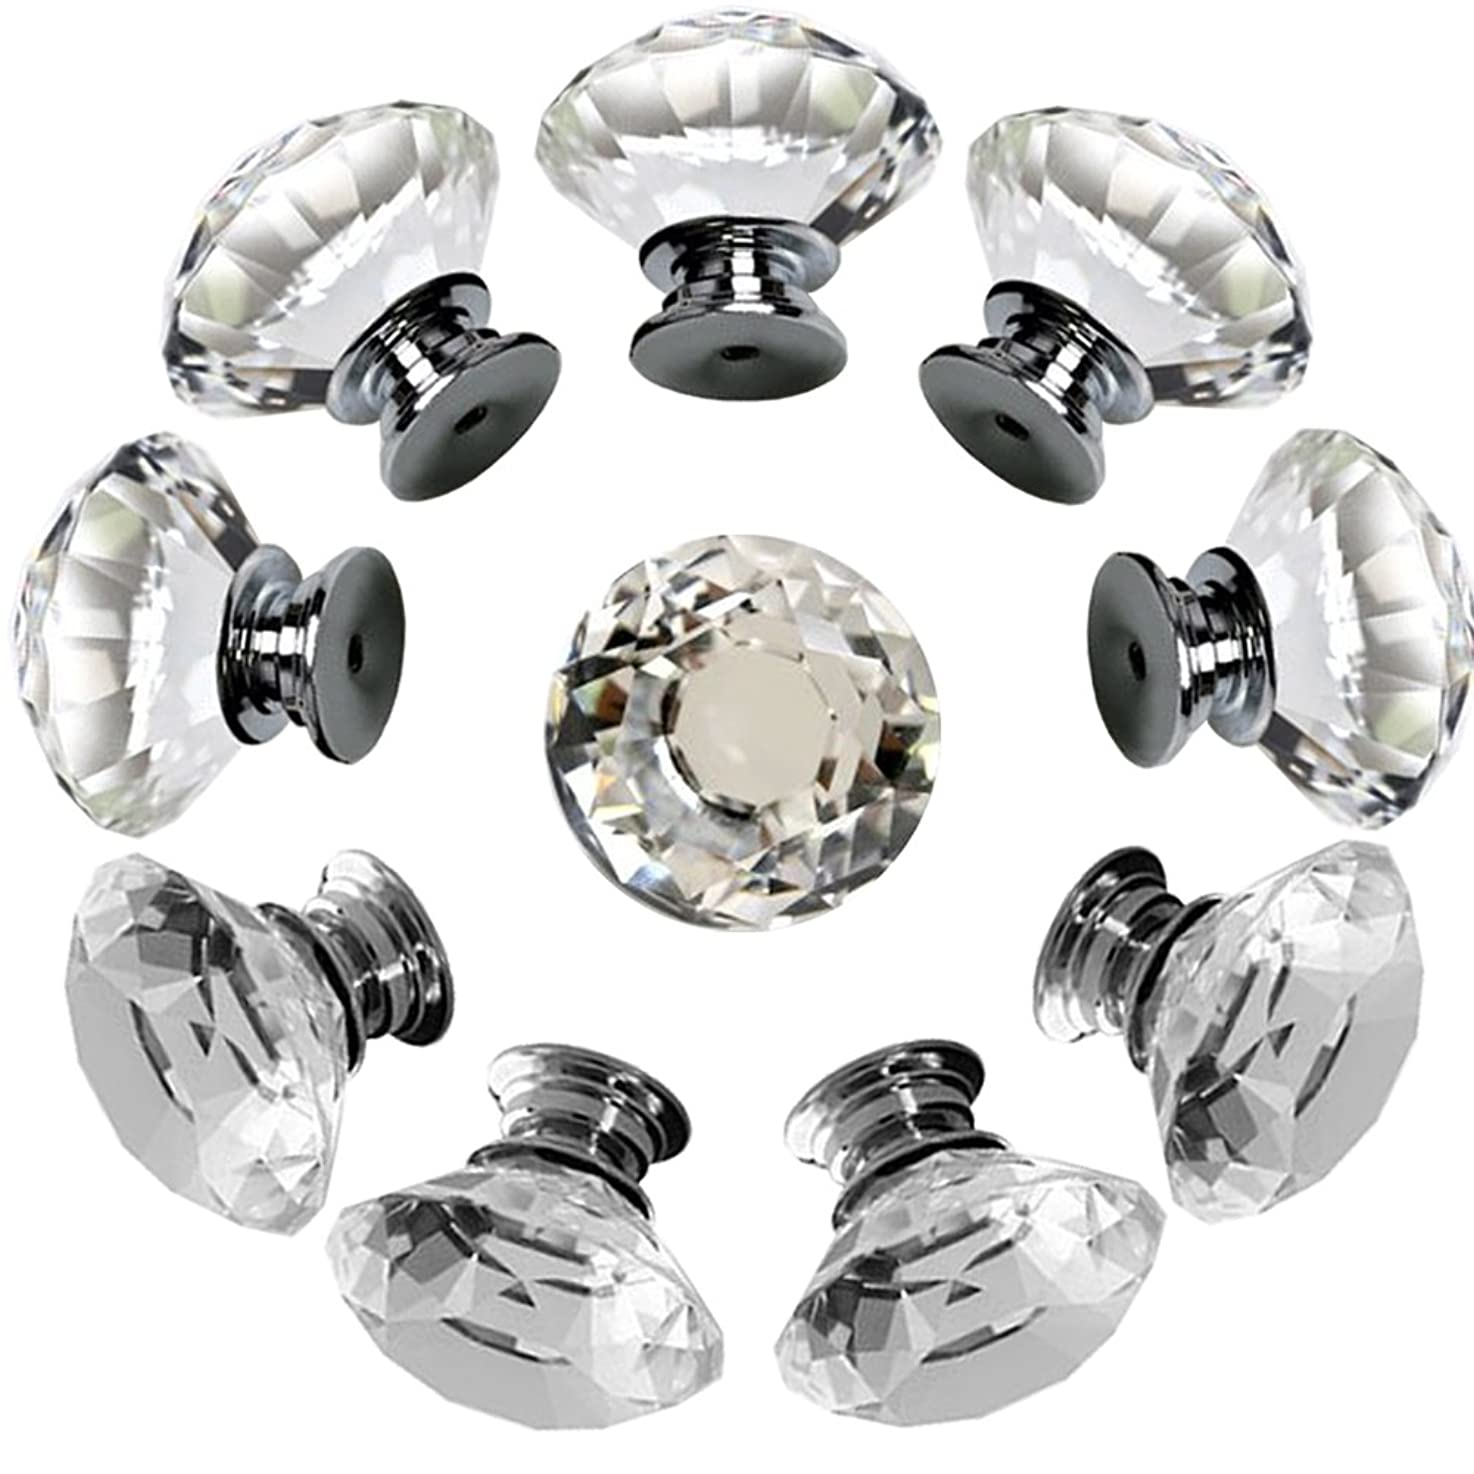 Drawer Knob Pull Handle Crystal Glass Diamond Shape Cabinet Drawer Pulls Cupboard Knobs with Screws for Home Office Cabinet Cupboard Bonus Silver Screws DIY (10 Pieces) crybscaiiarog5